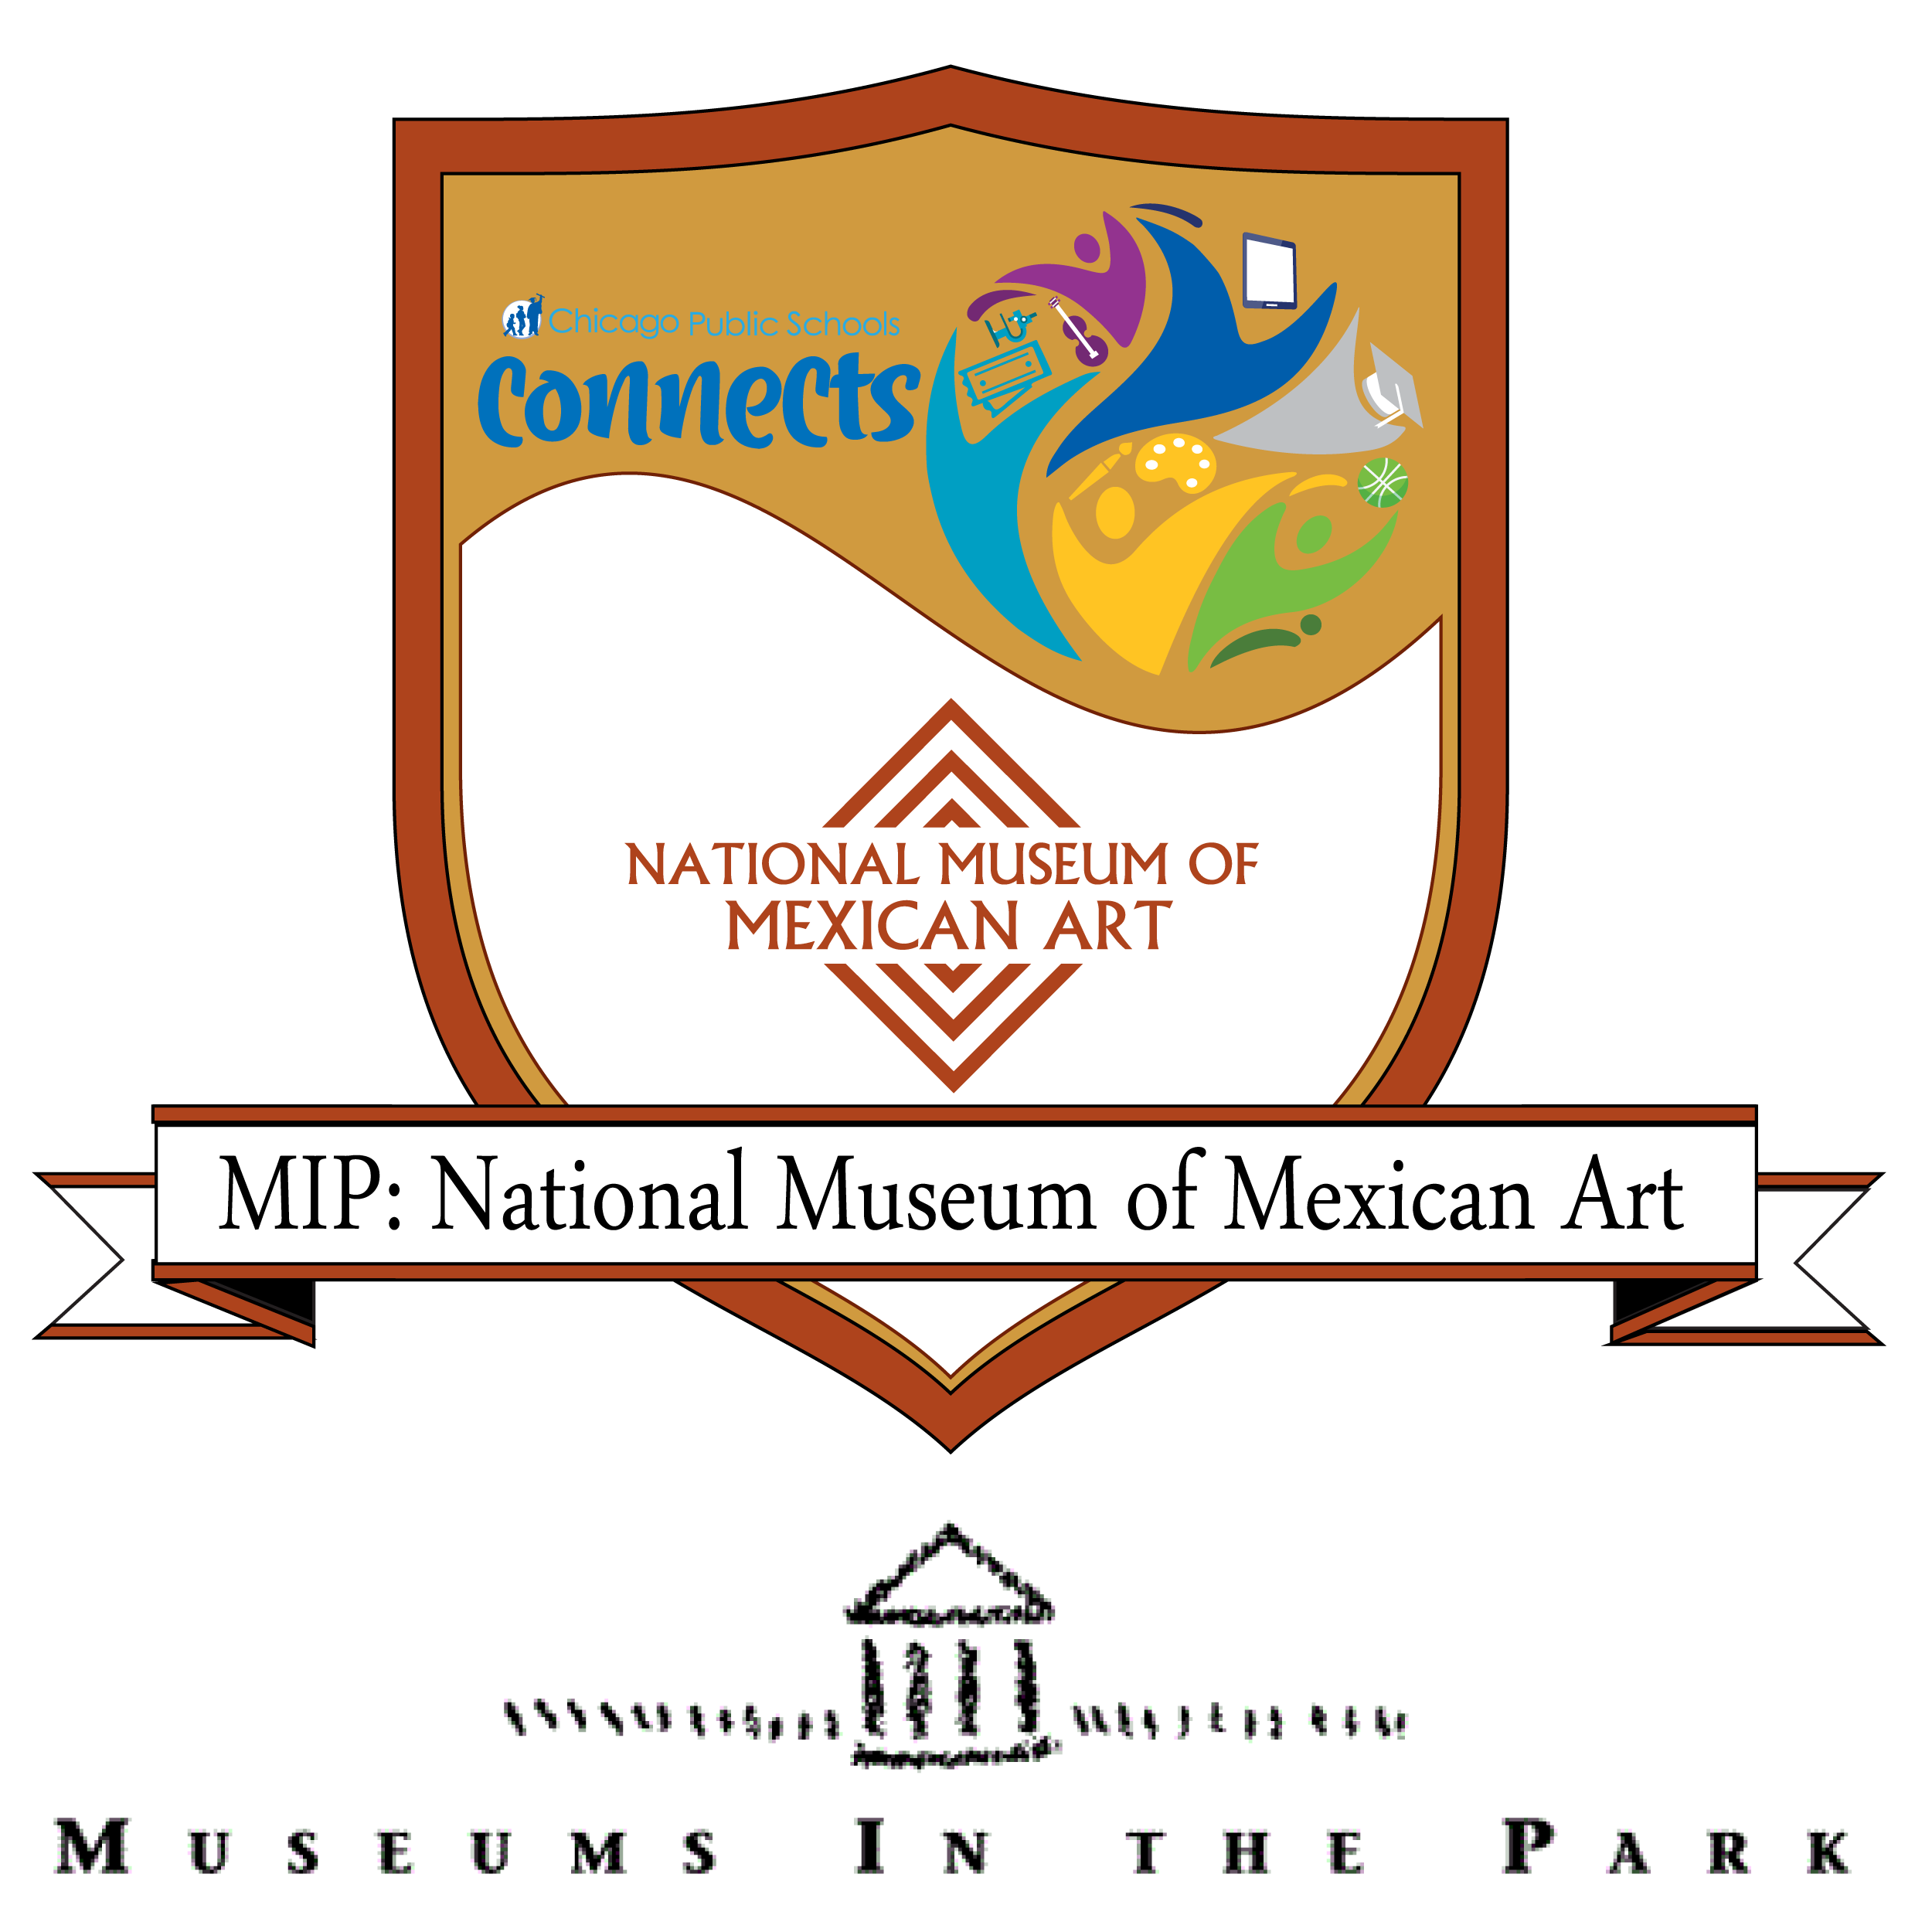 Museums in the Park: National Museum of Mexican Art